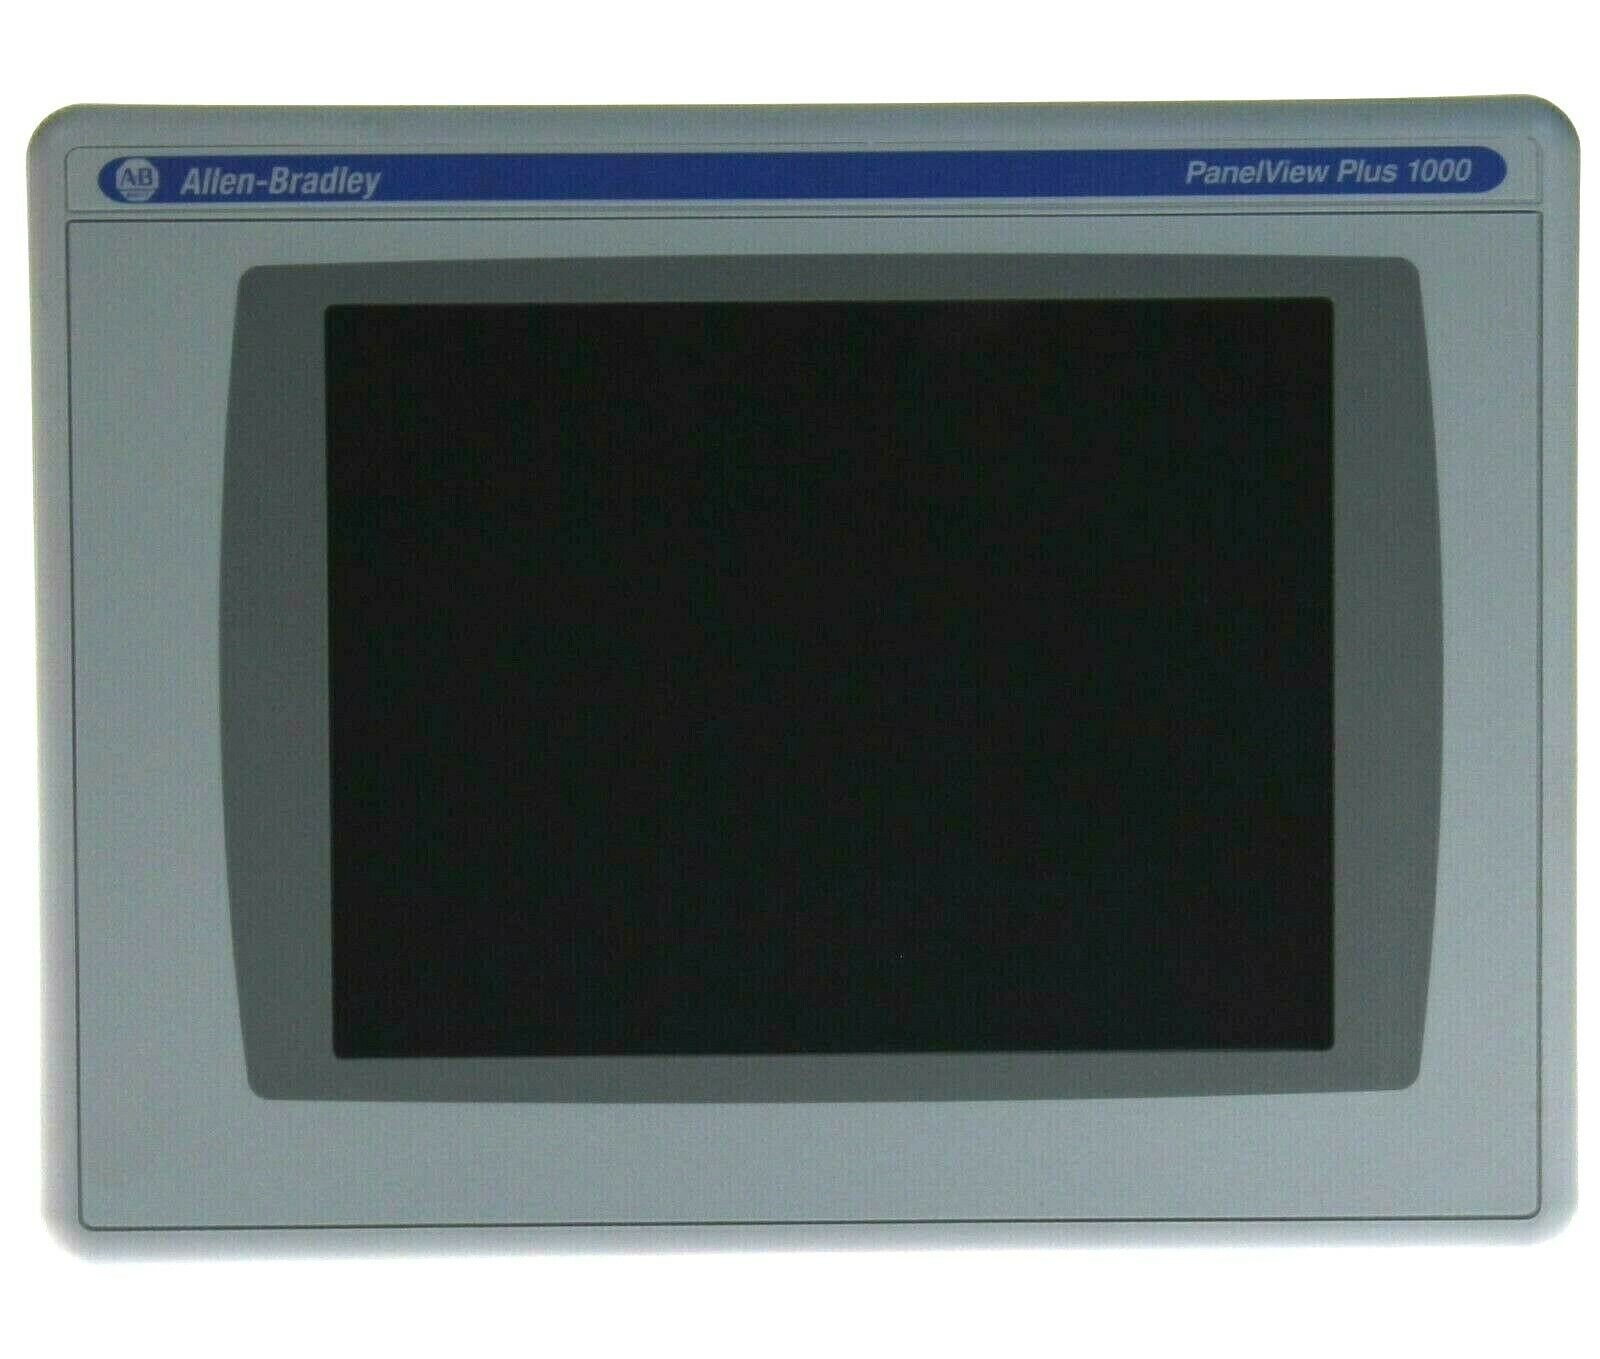 Allen Bradley 2711P-T10C4D9 /A PanelView Plus 1000 Assembled Color Touchscreen